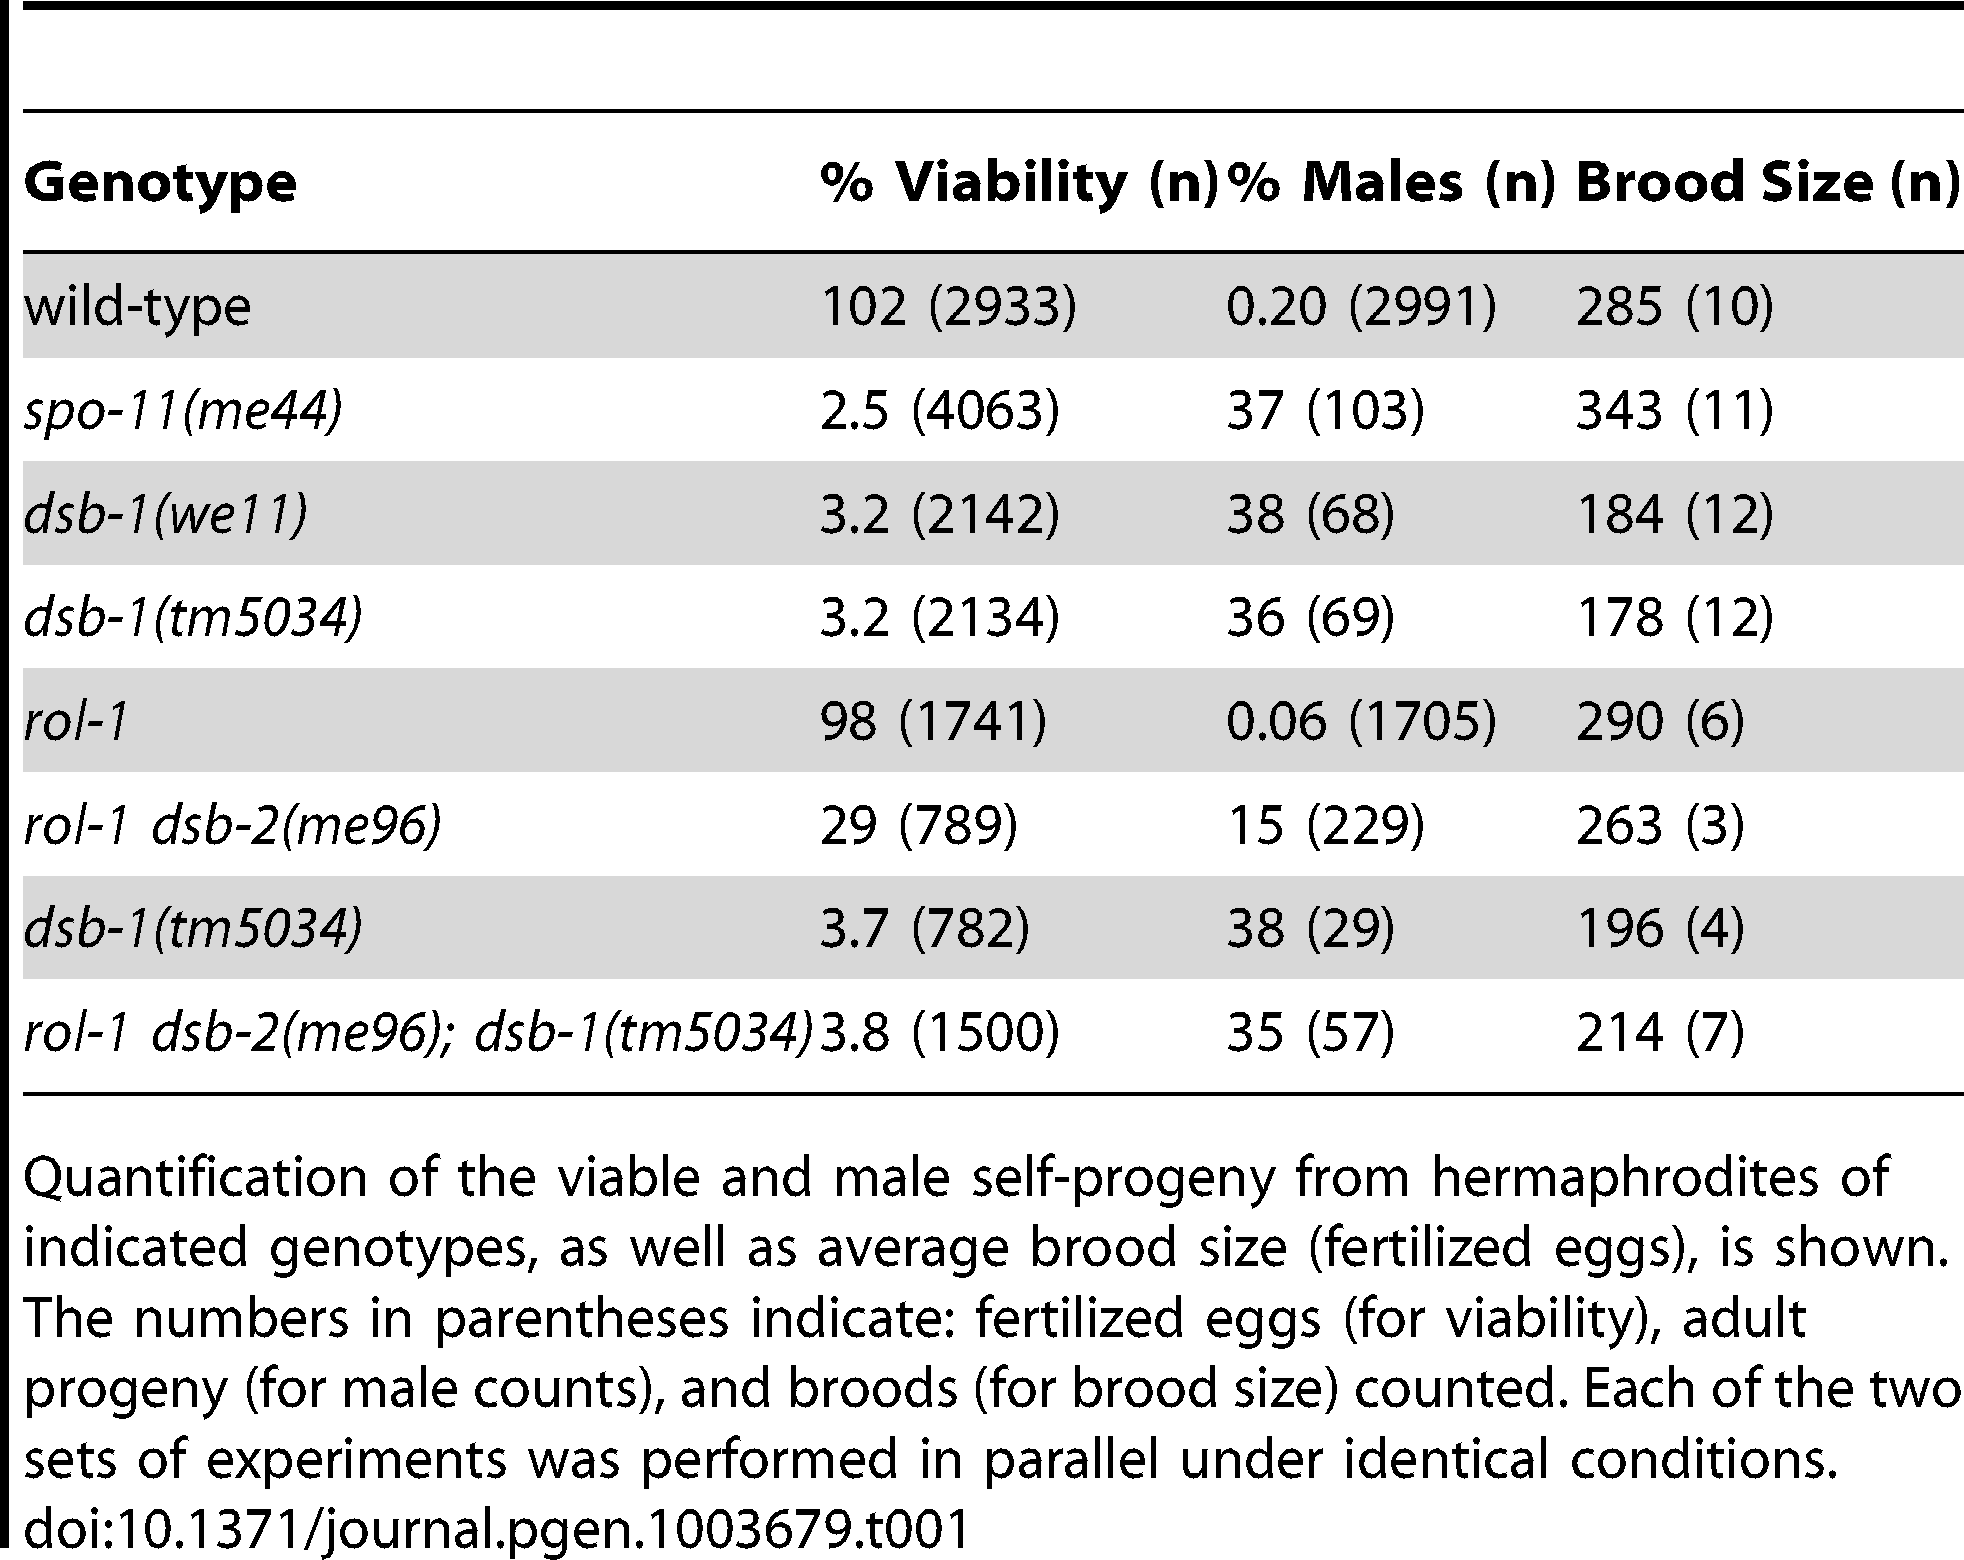 Progeny viability, incidence of males, and brood size from <i>dsb-1</i> and <i>dsb-2</i> mutants.